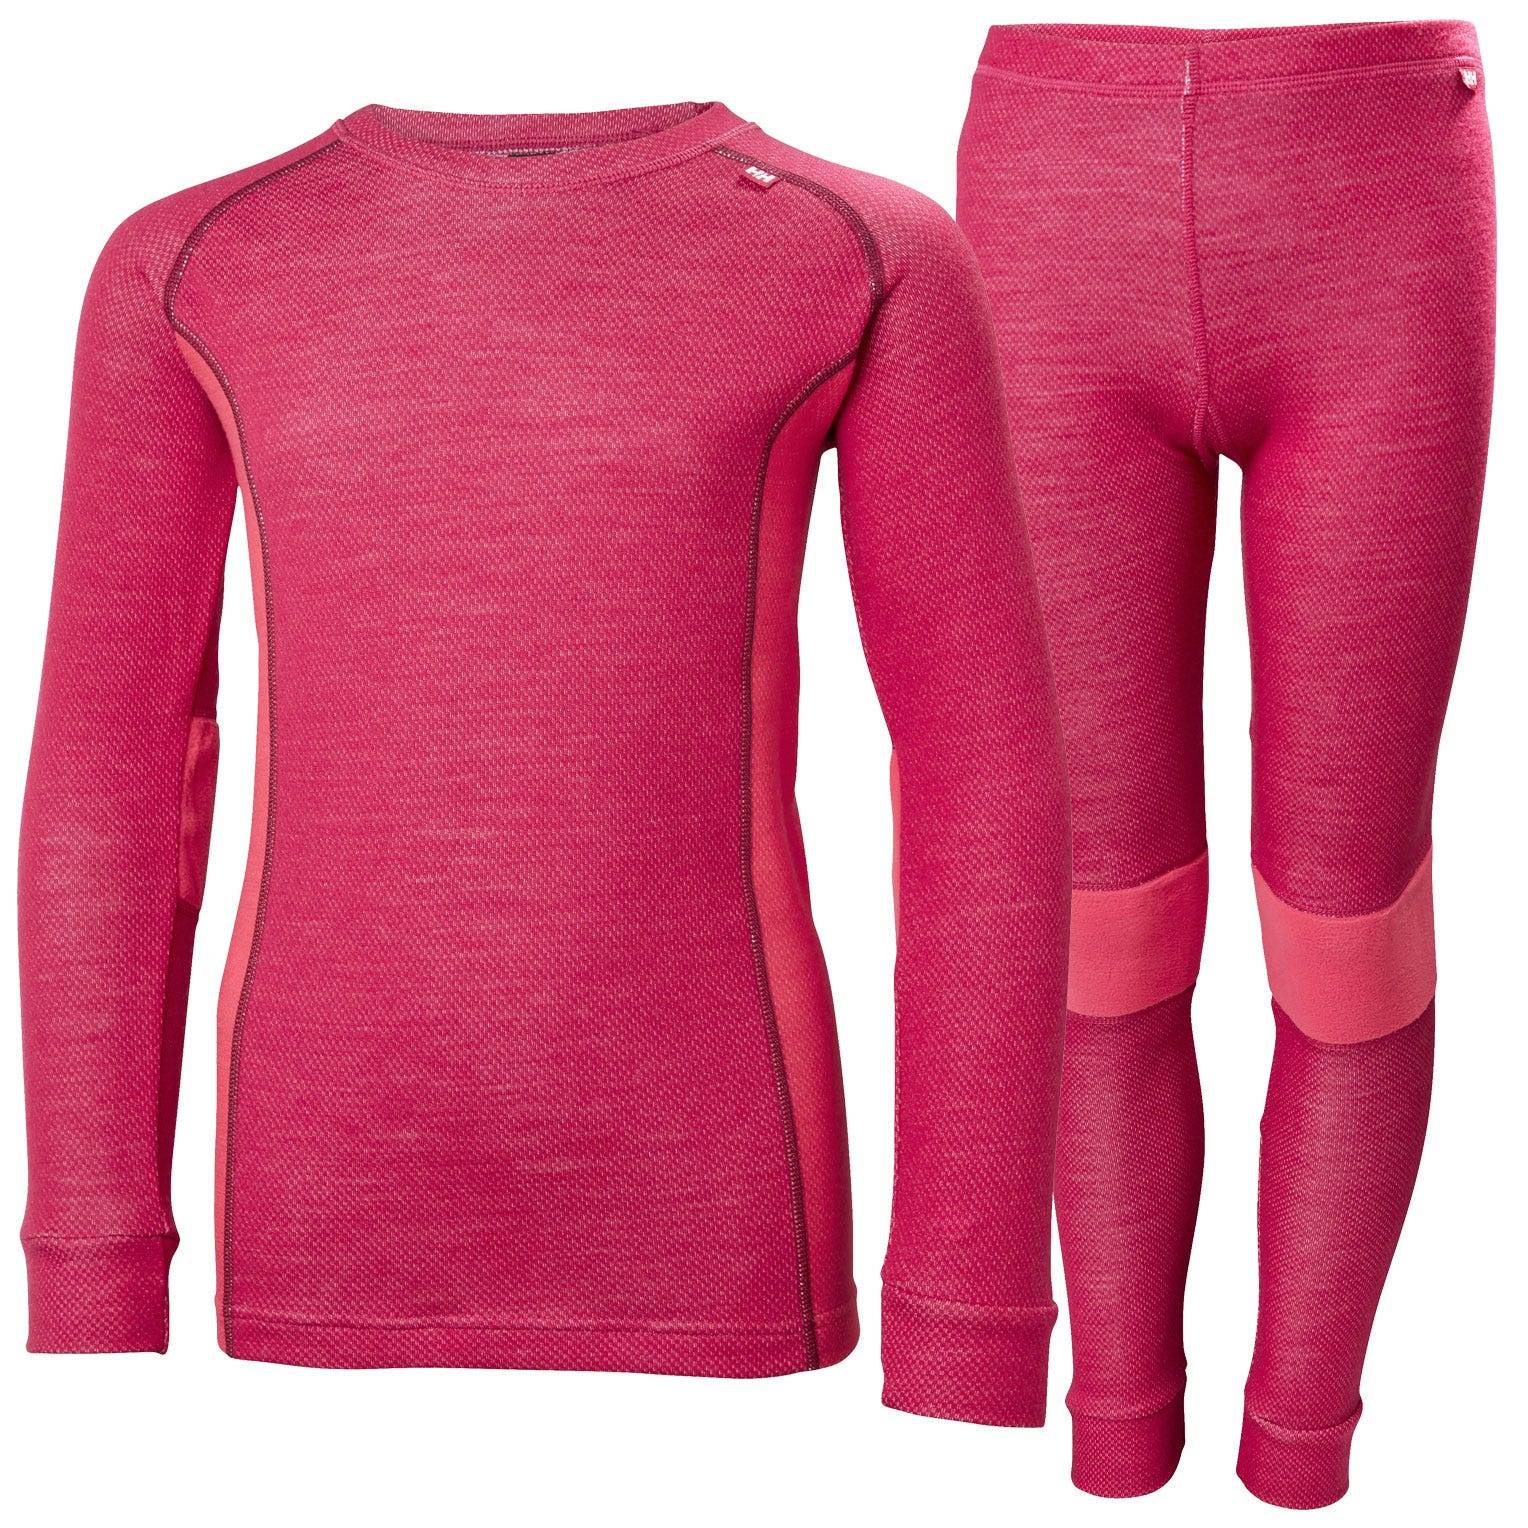 Helly Hansen Junior Lifa Merino Set Kids Baselayer Pink 164/14